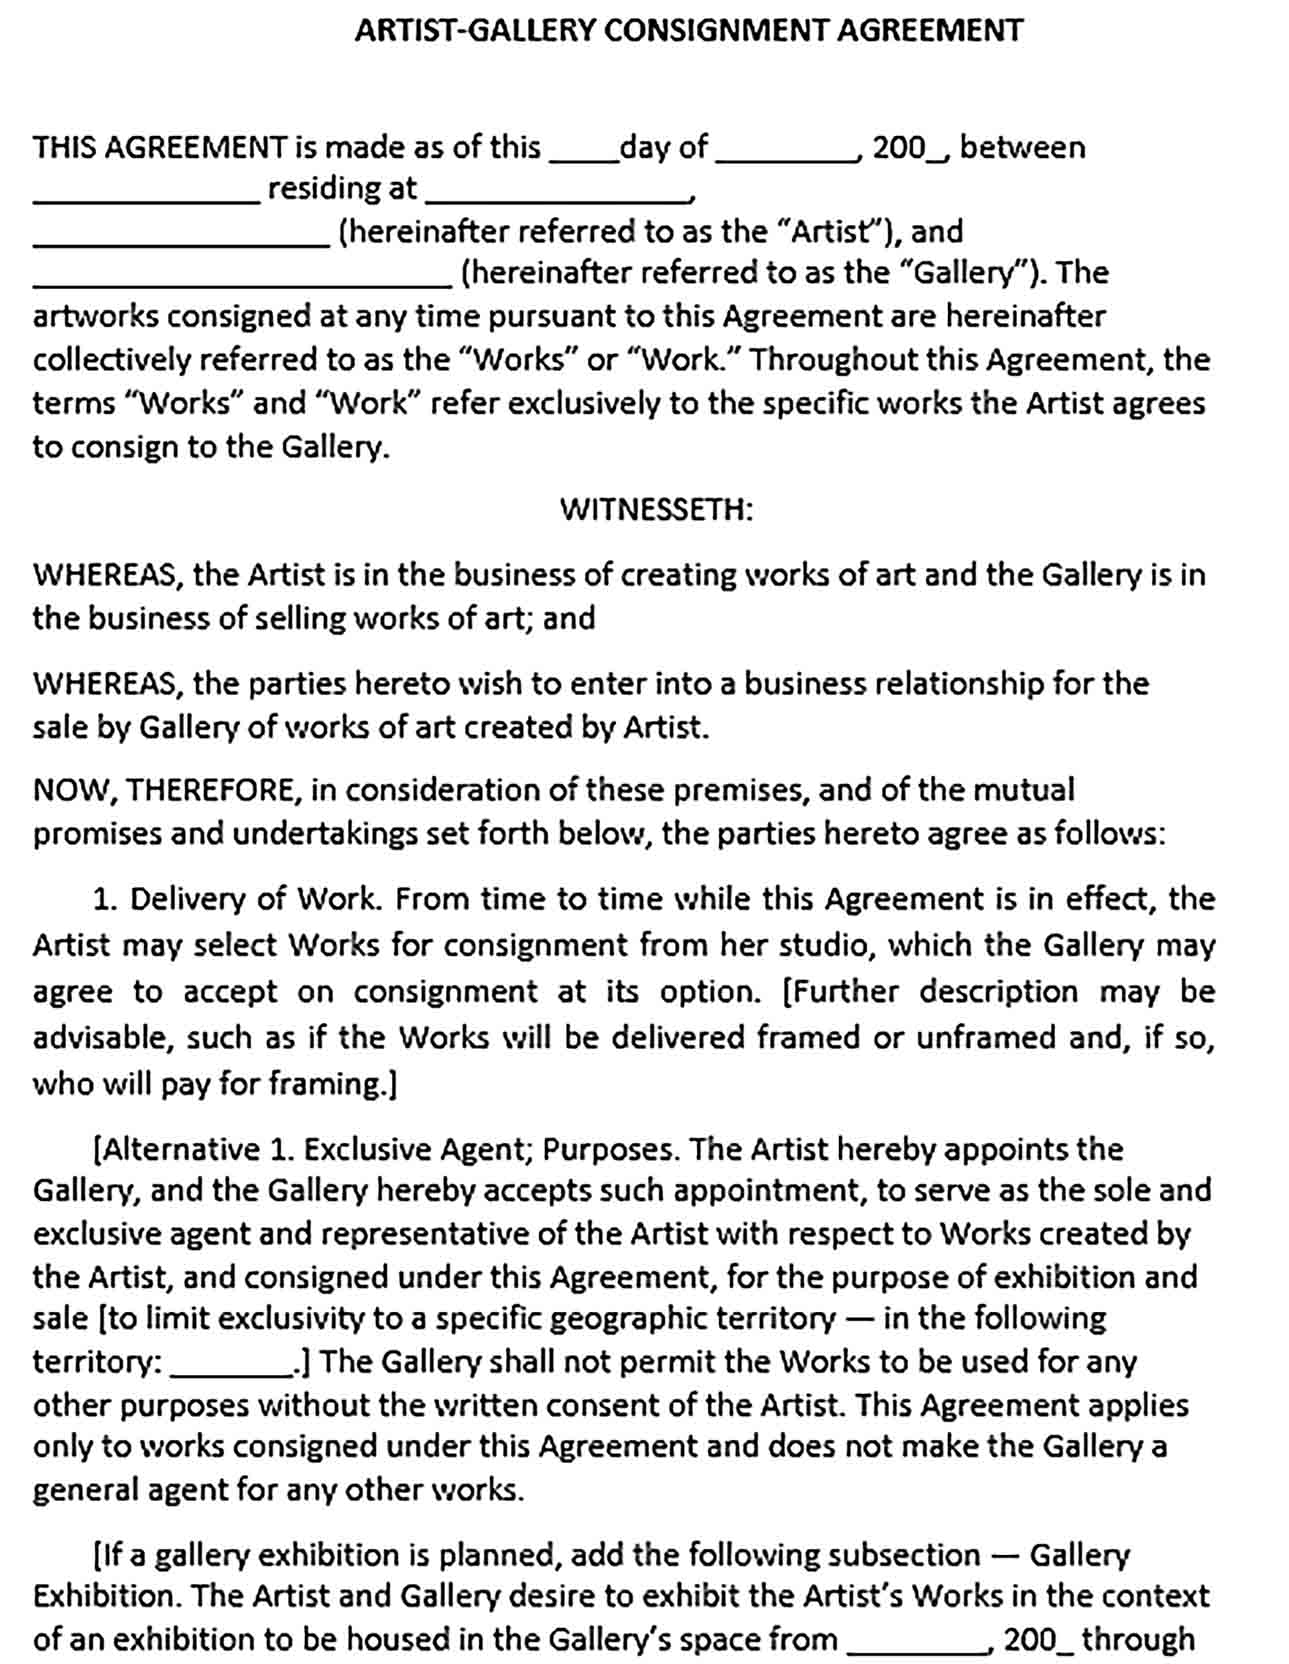 Sample Artist Gallery Consignment Agreement